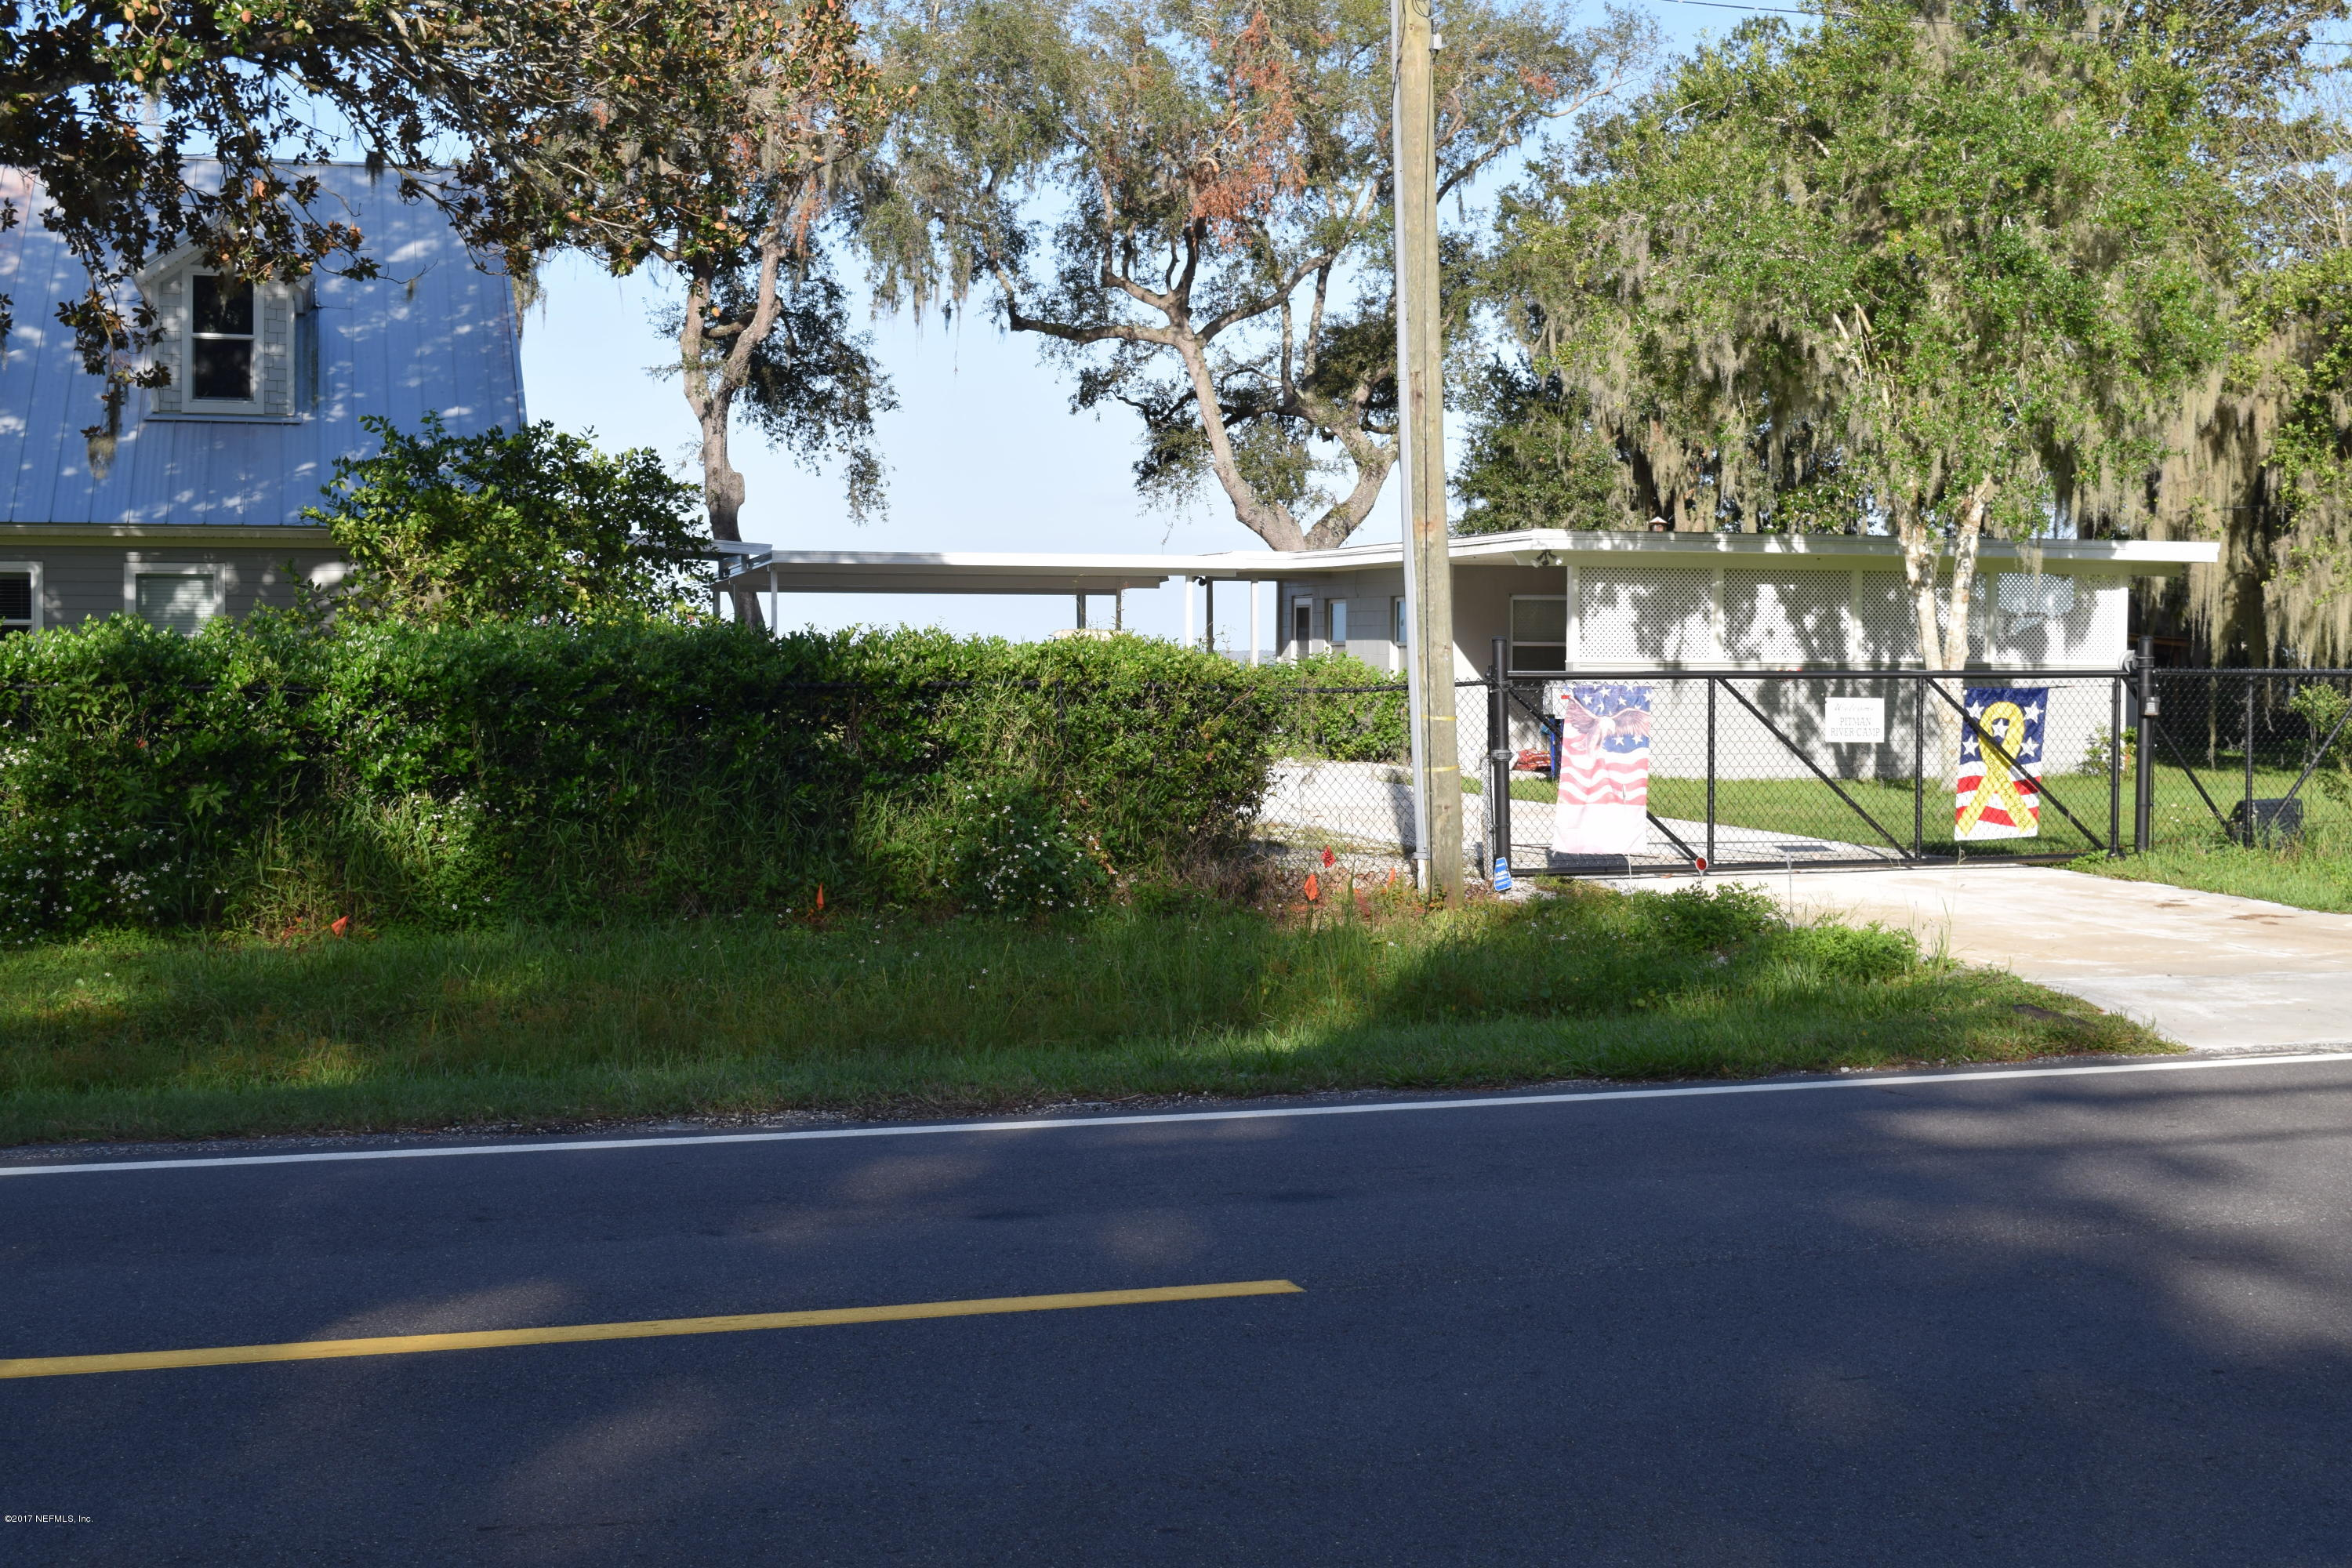 0 COUNTY ROAD 13, ST AUGUSTINE, FLORIDA 32092, ,Vacant land,For sale,COUNTY ROAD 13,902335